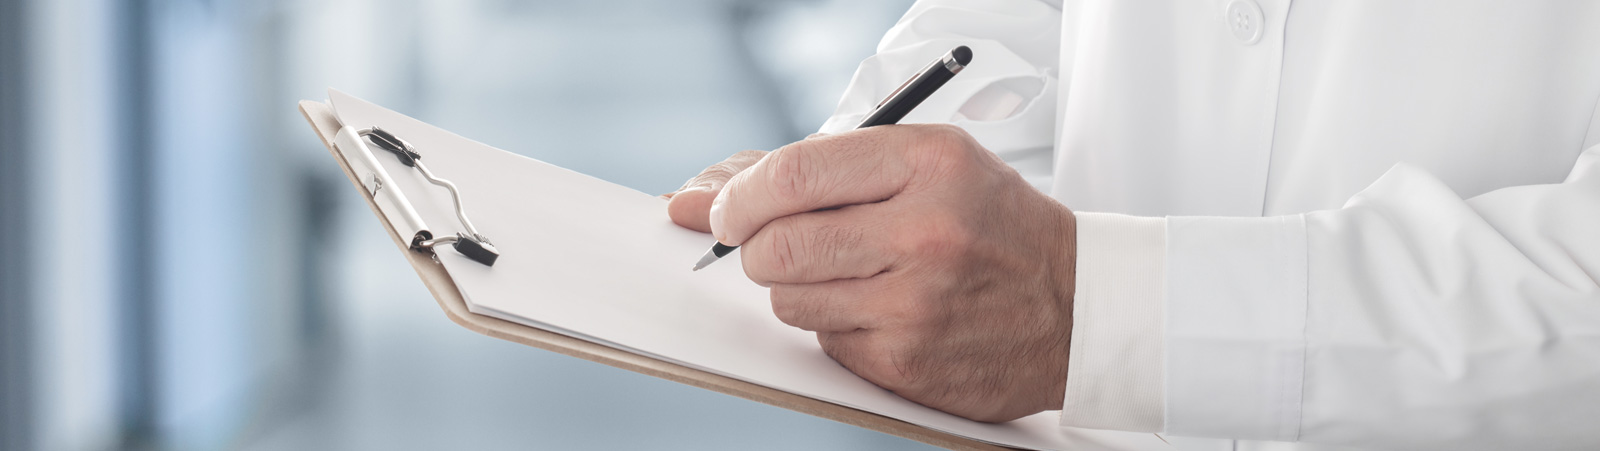 Male doctor holding clipboard filling up medical form